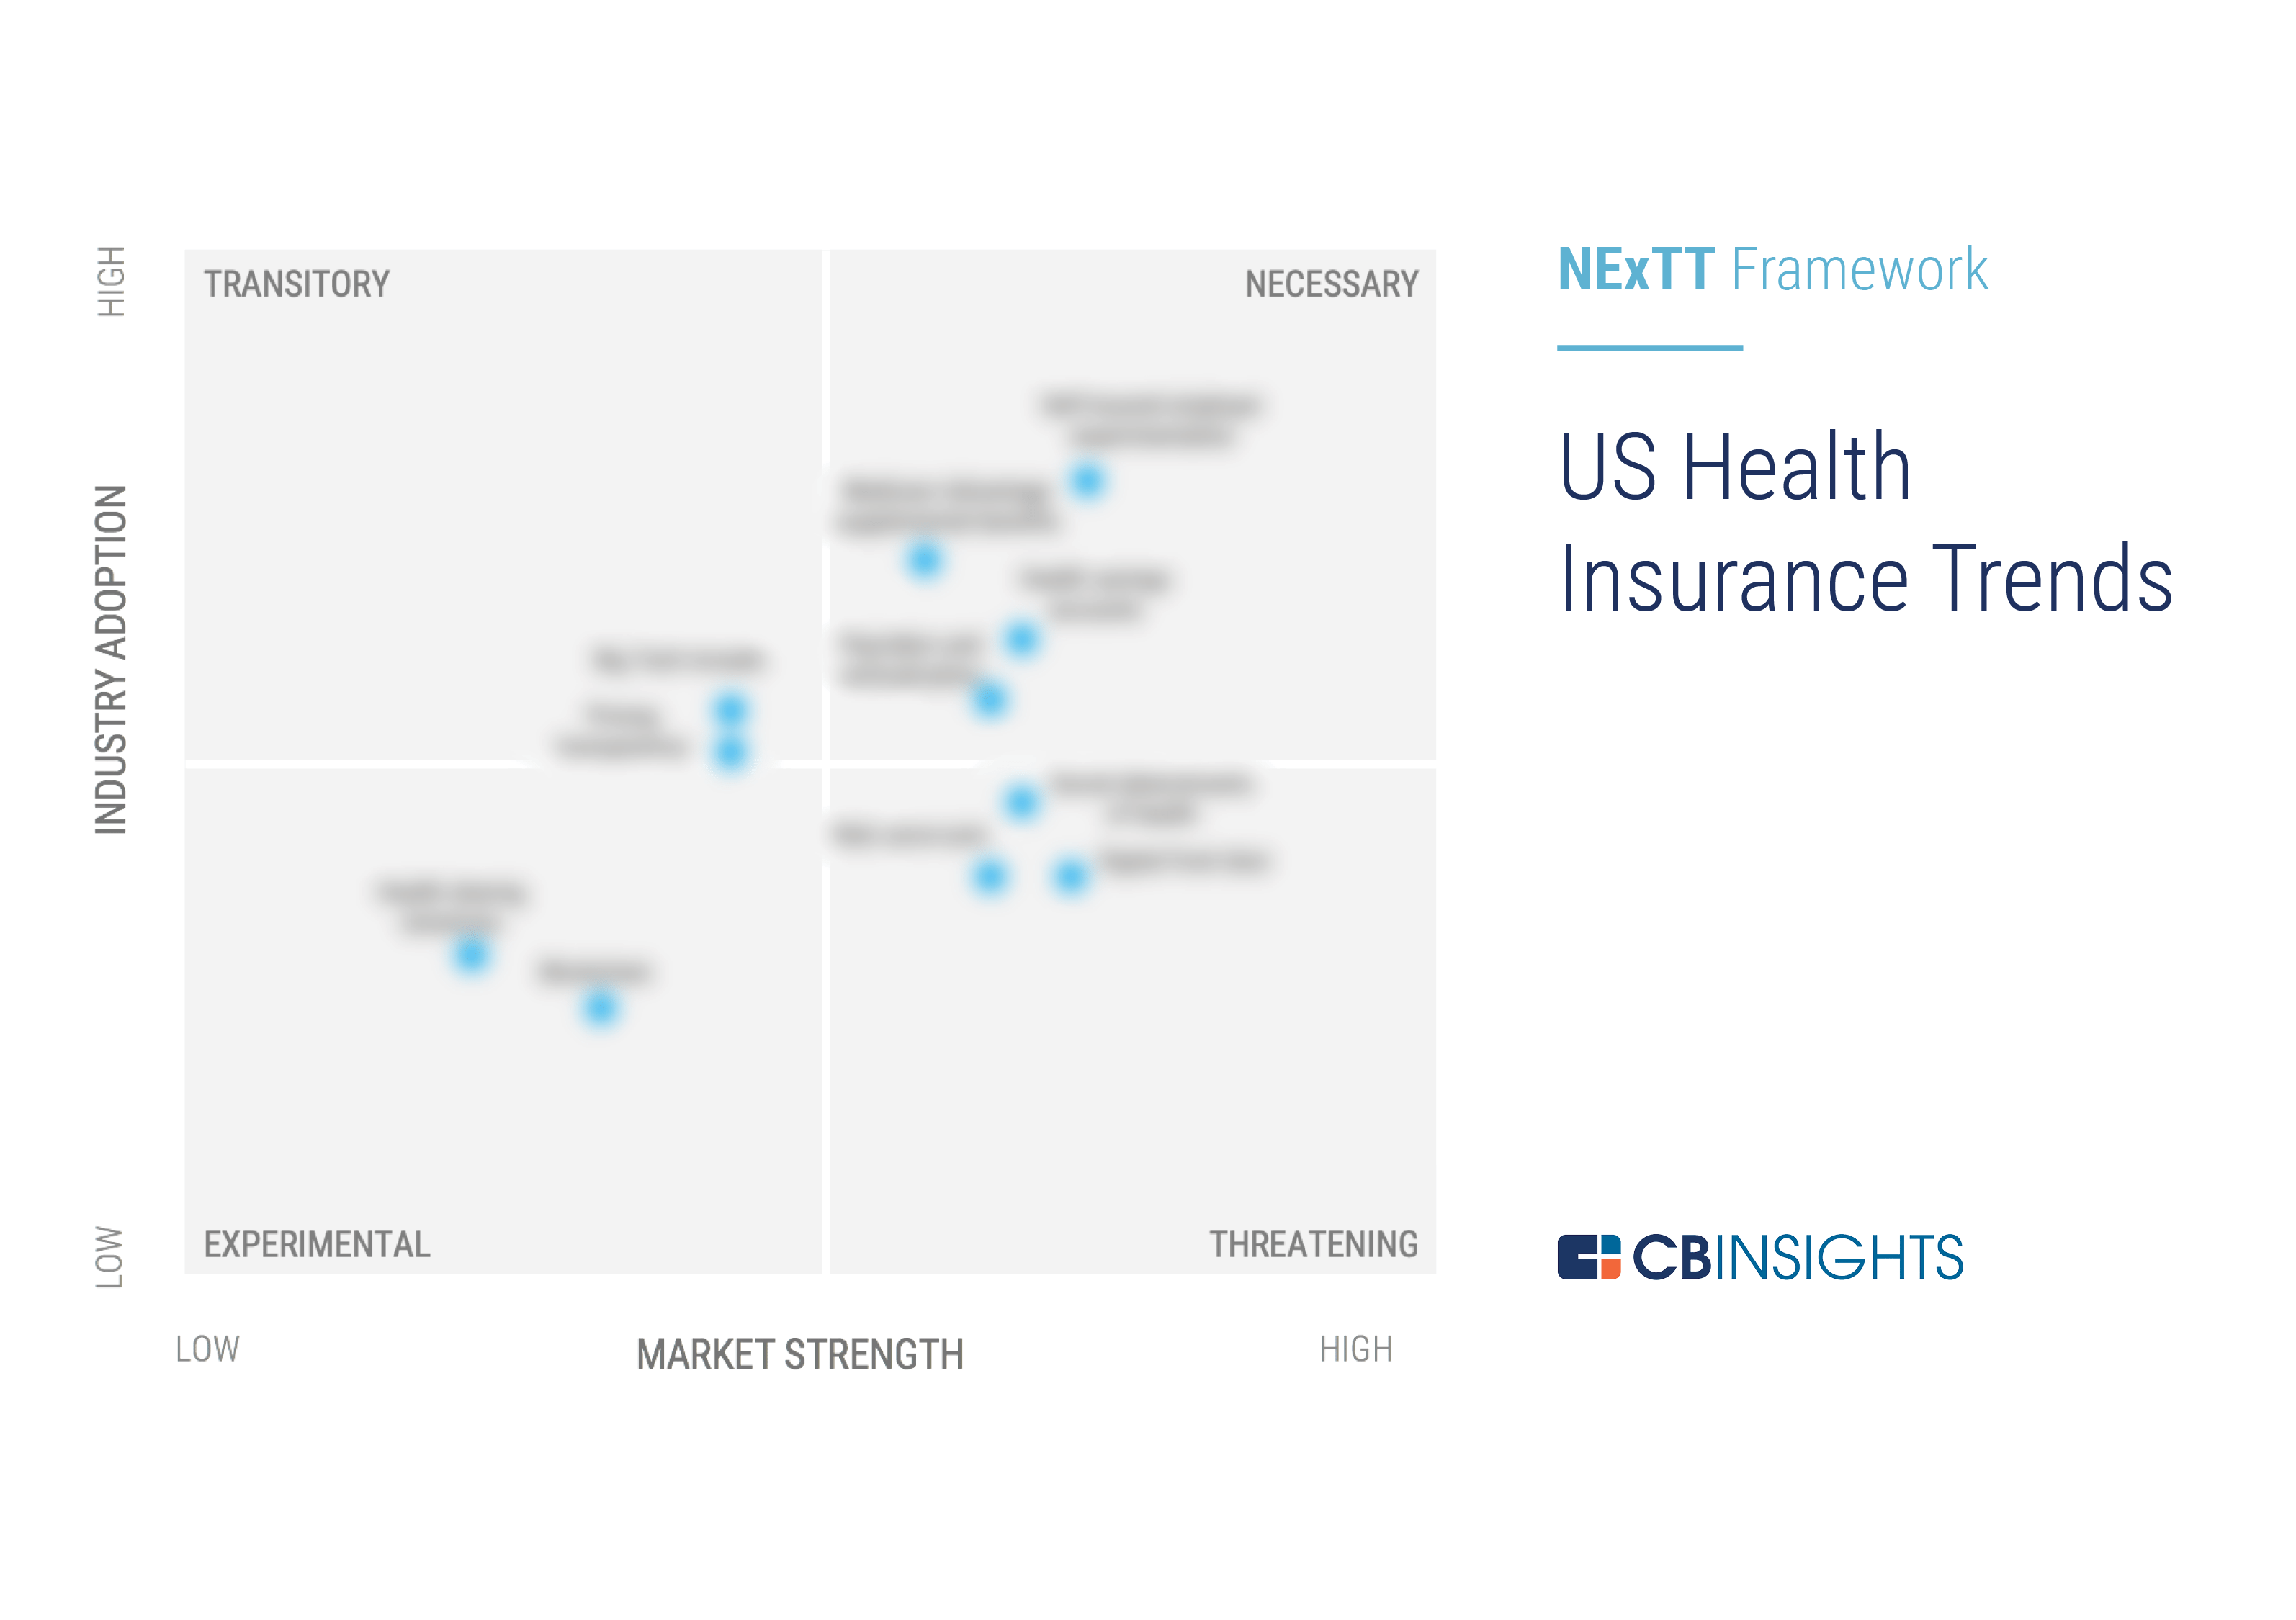 Us Health Insurance Industry Trends In 2020 Cb Insights Research